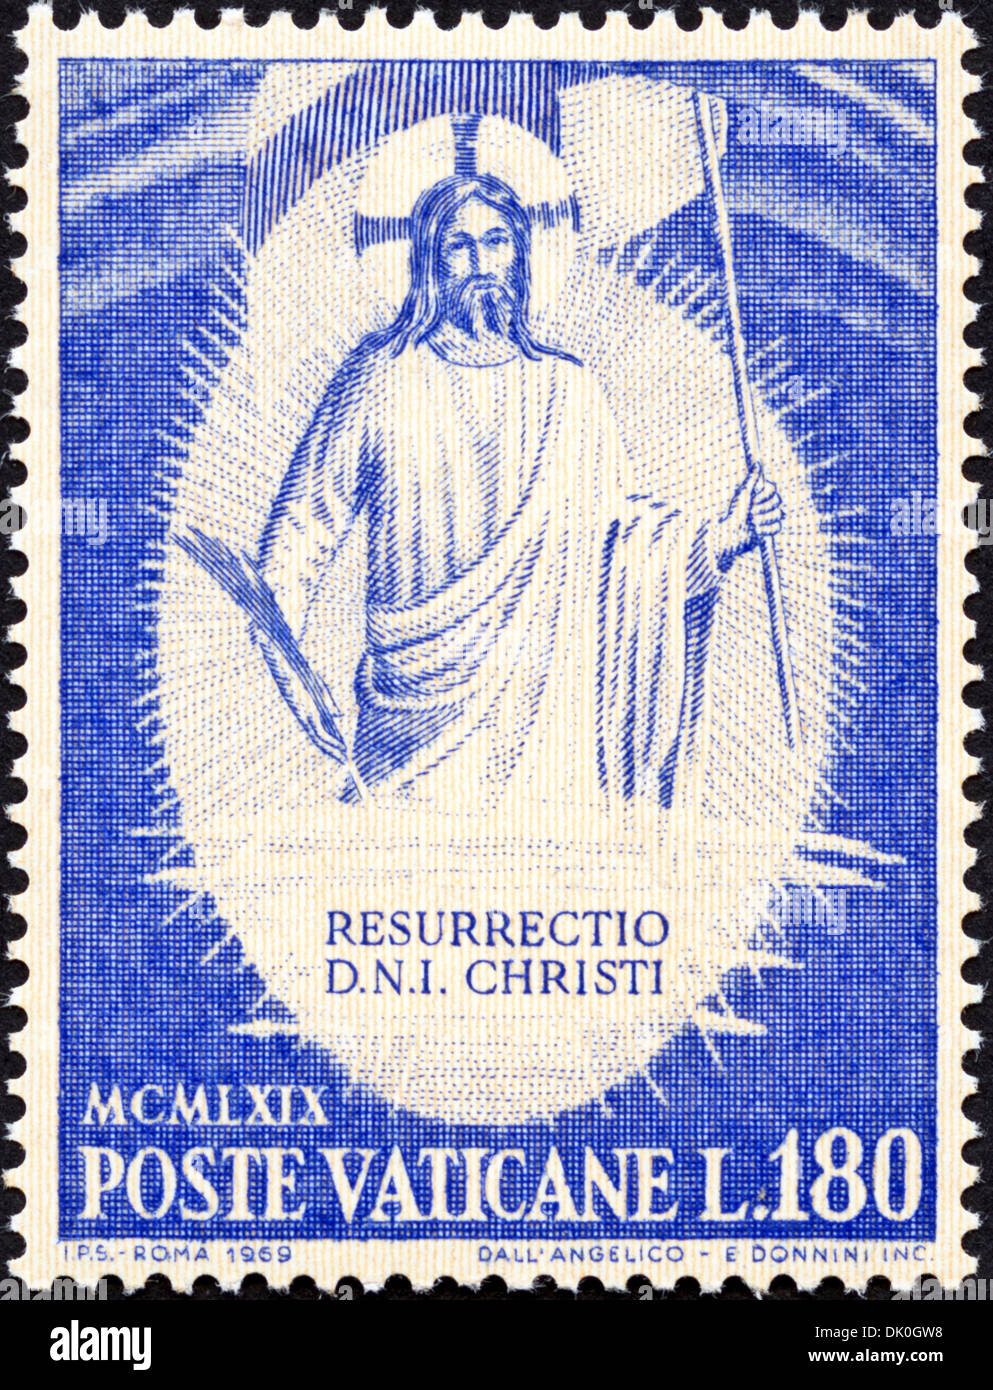 postage stamp Vatican L.180 featuring Resurrection of Christ issued 1969 - Stock Image